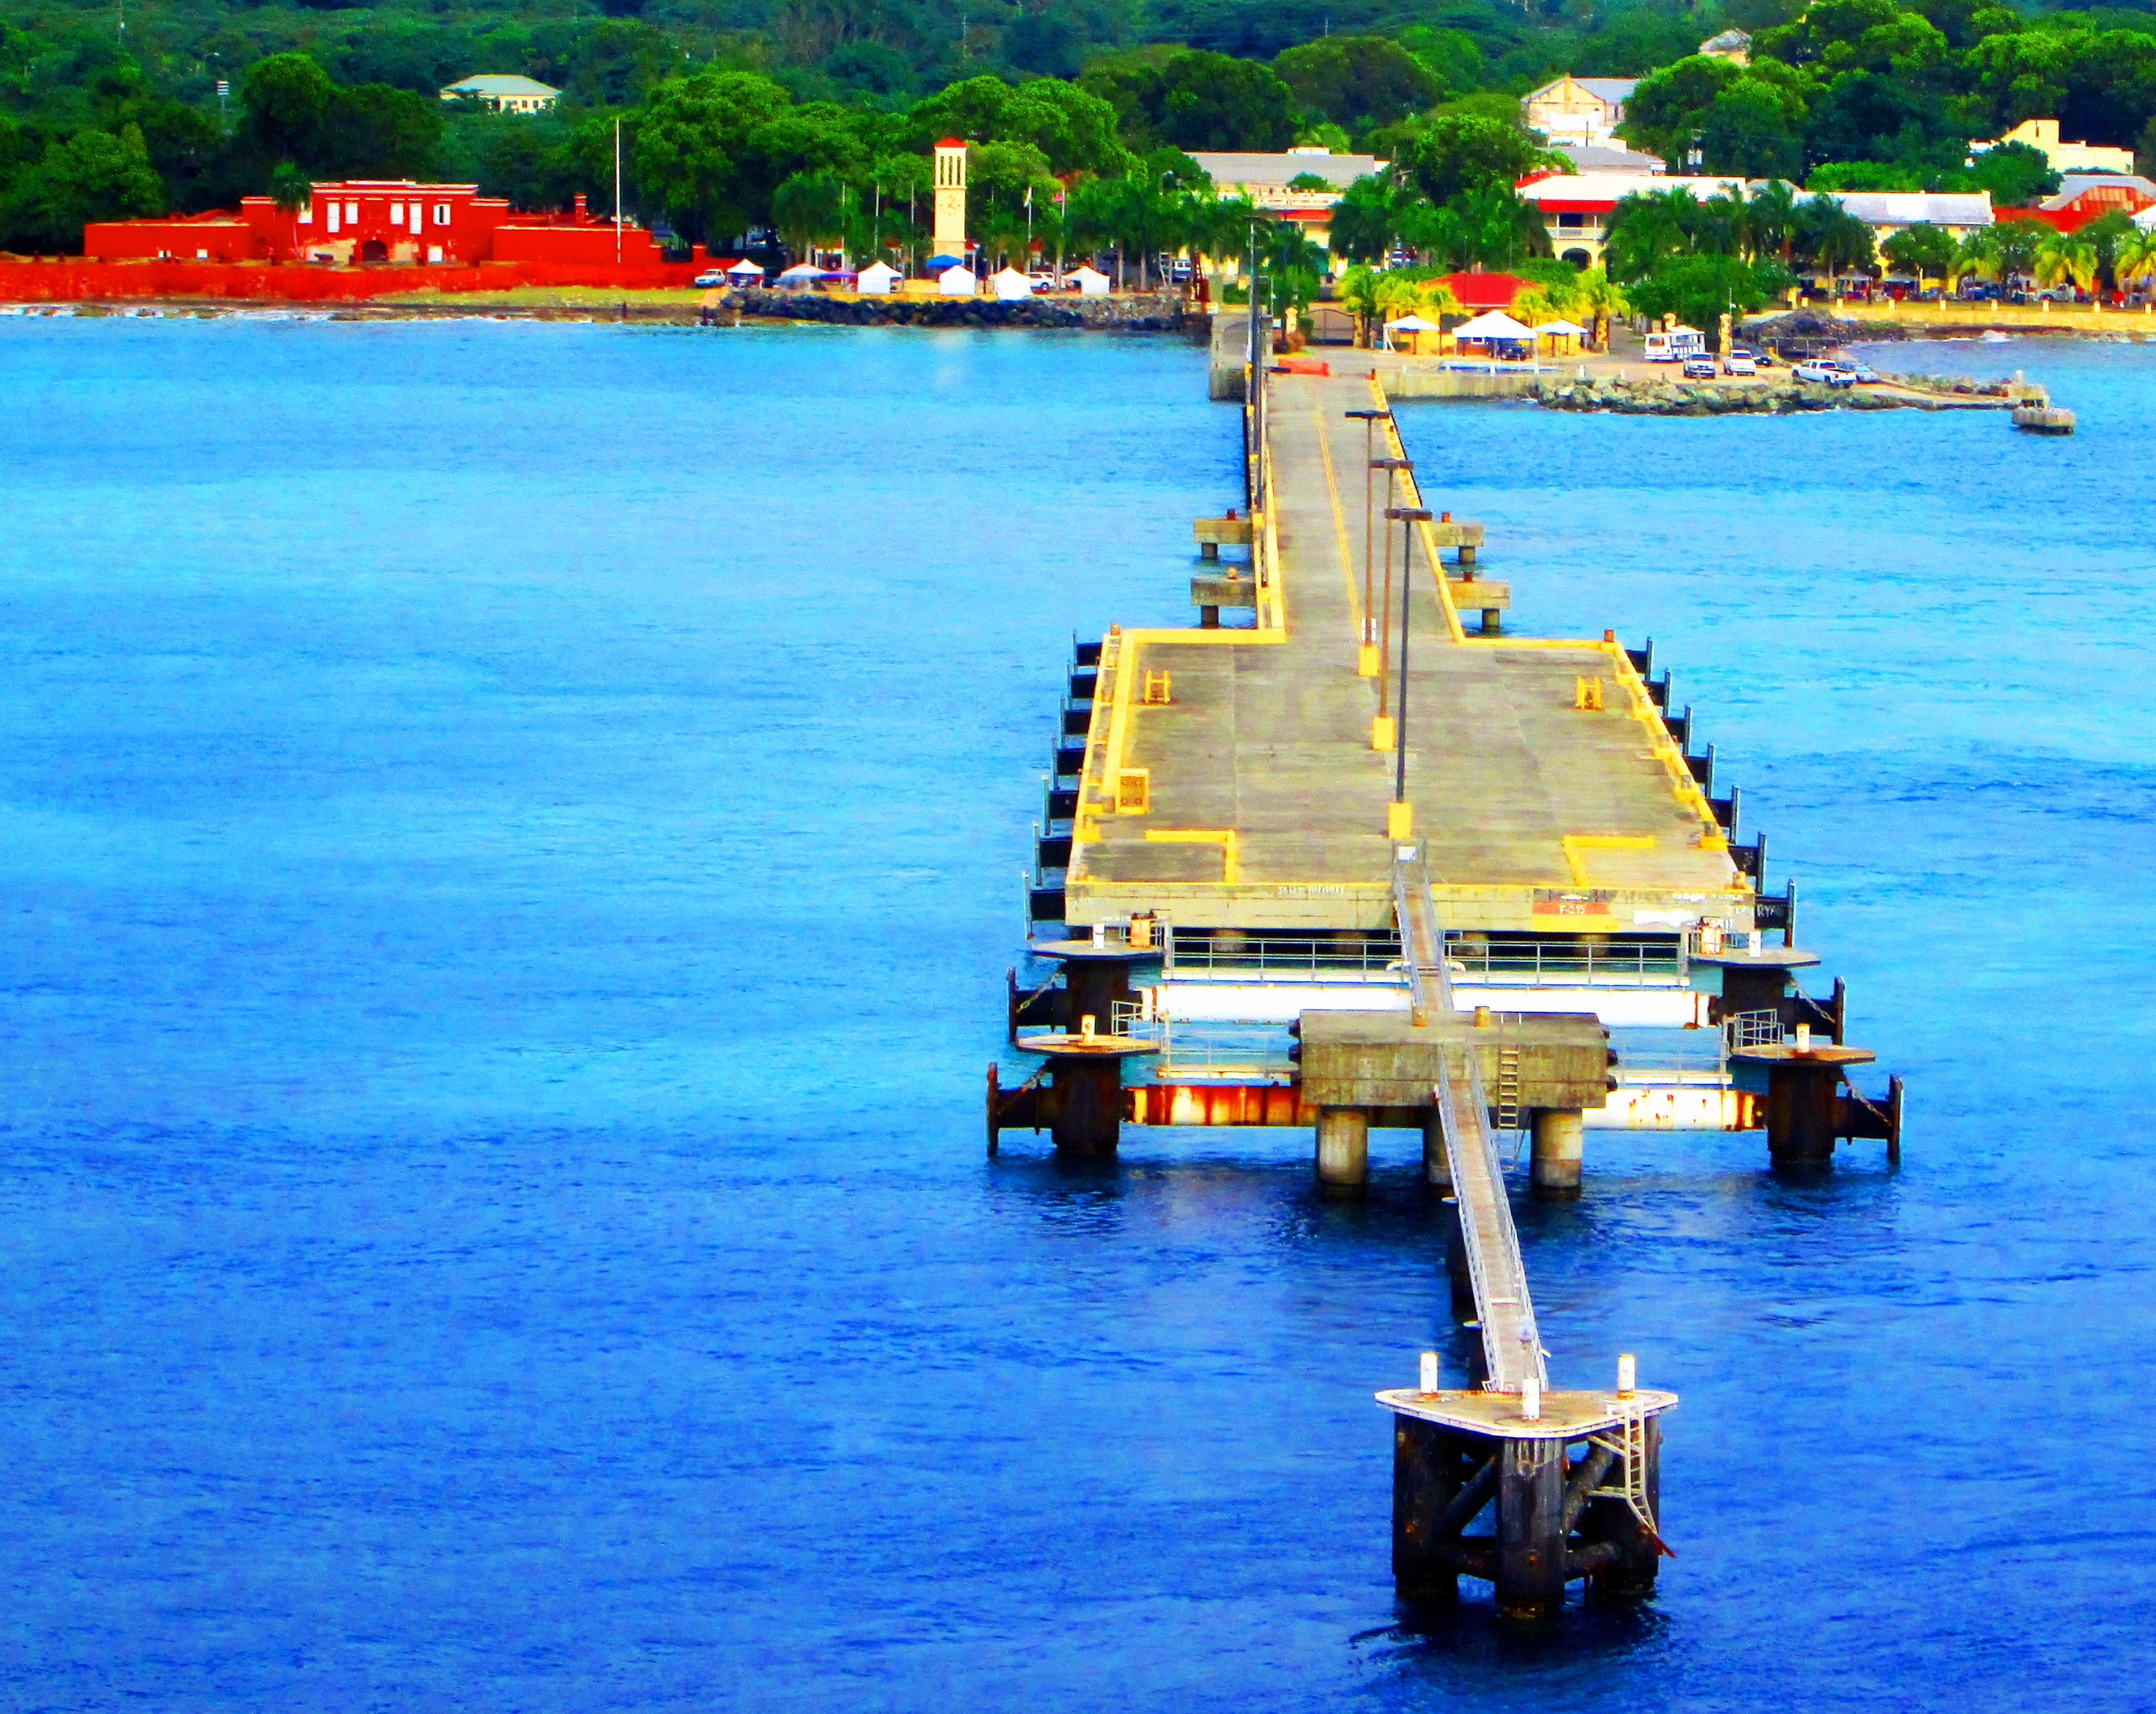 Anne E Abramson Cruise Ship Pier In St Croix